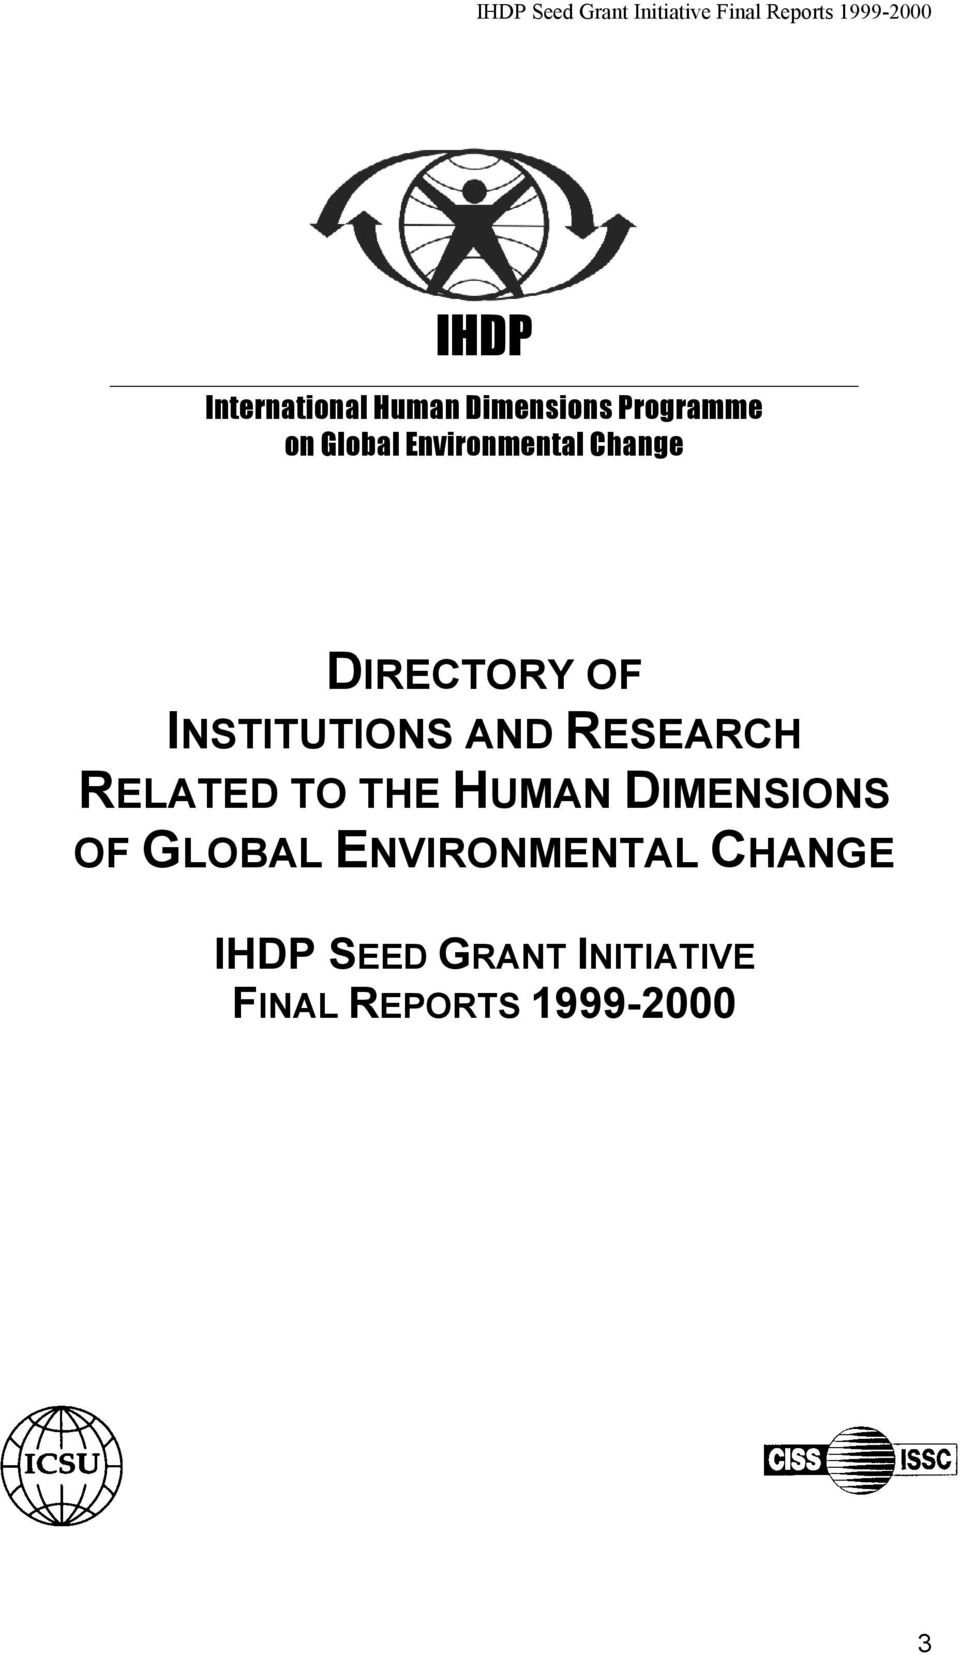 RESEARCH RELATED TO THE HUMAN DIMENSIONS OF GLOBAL